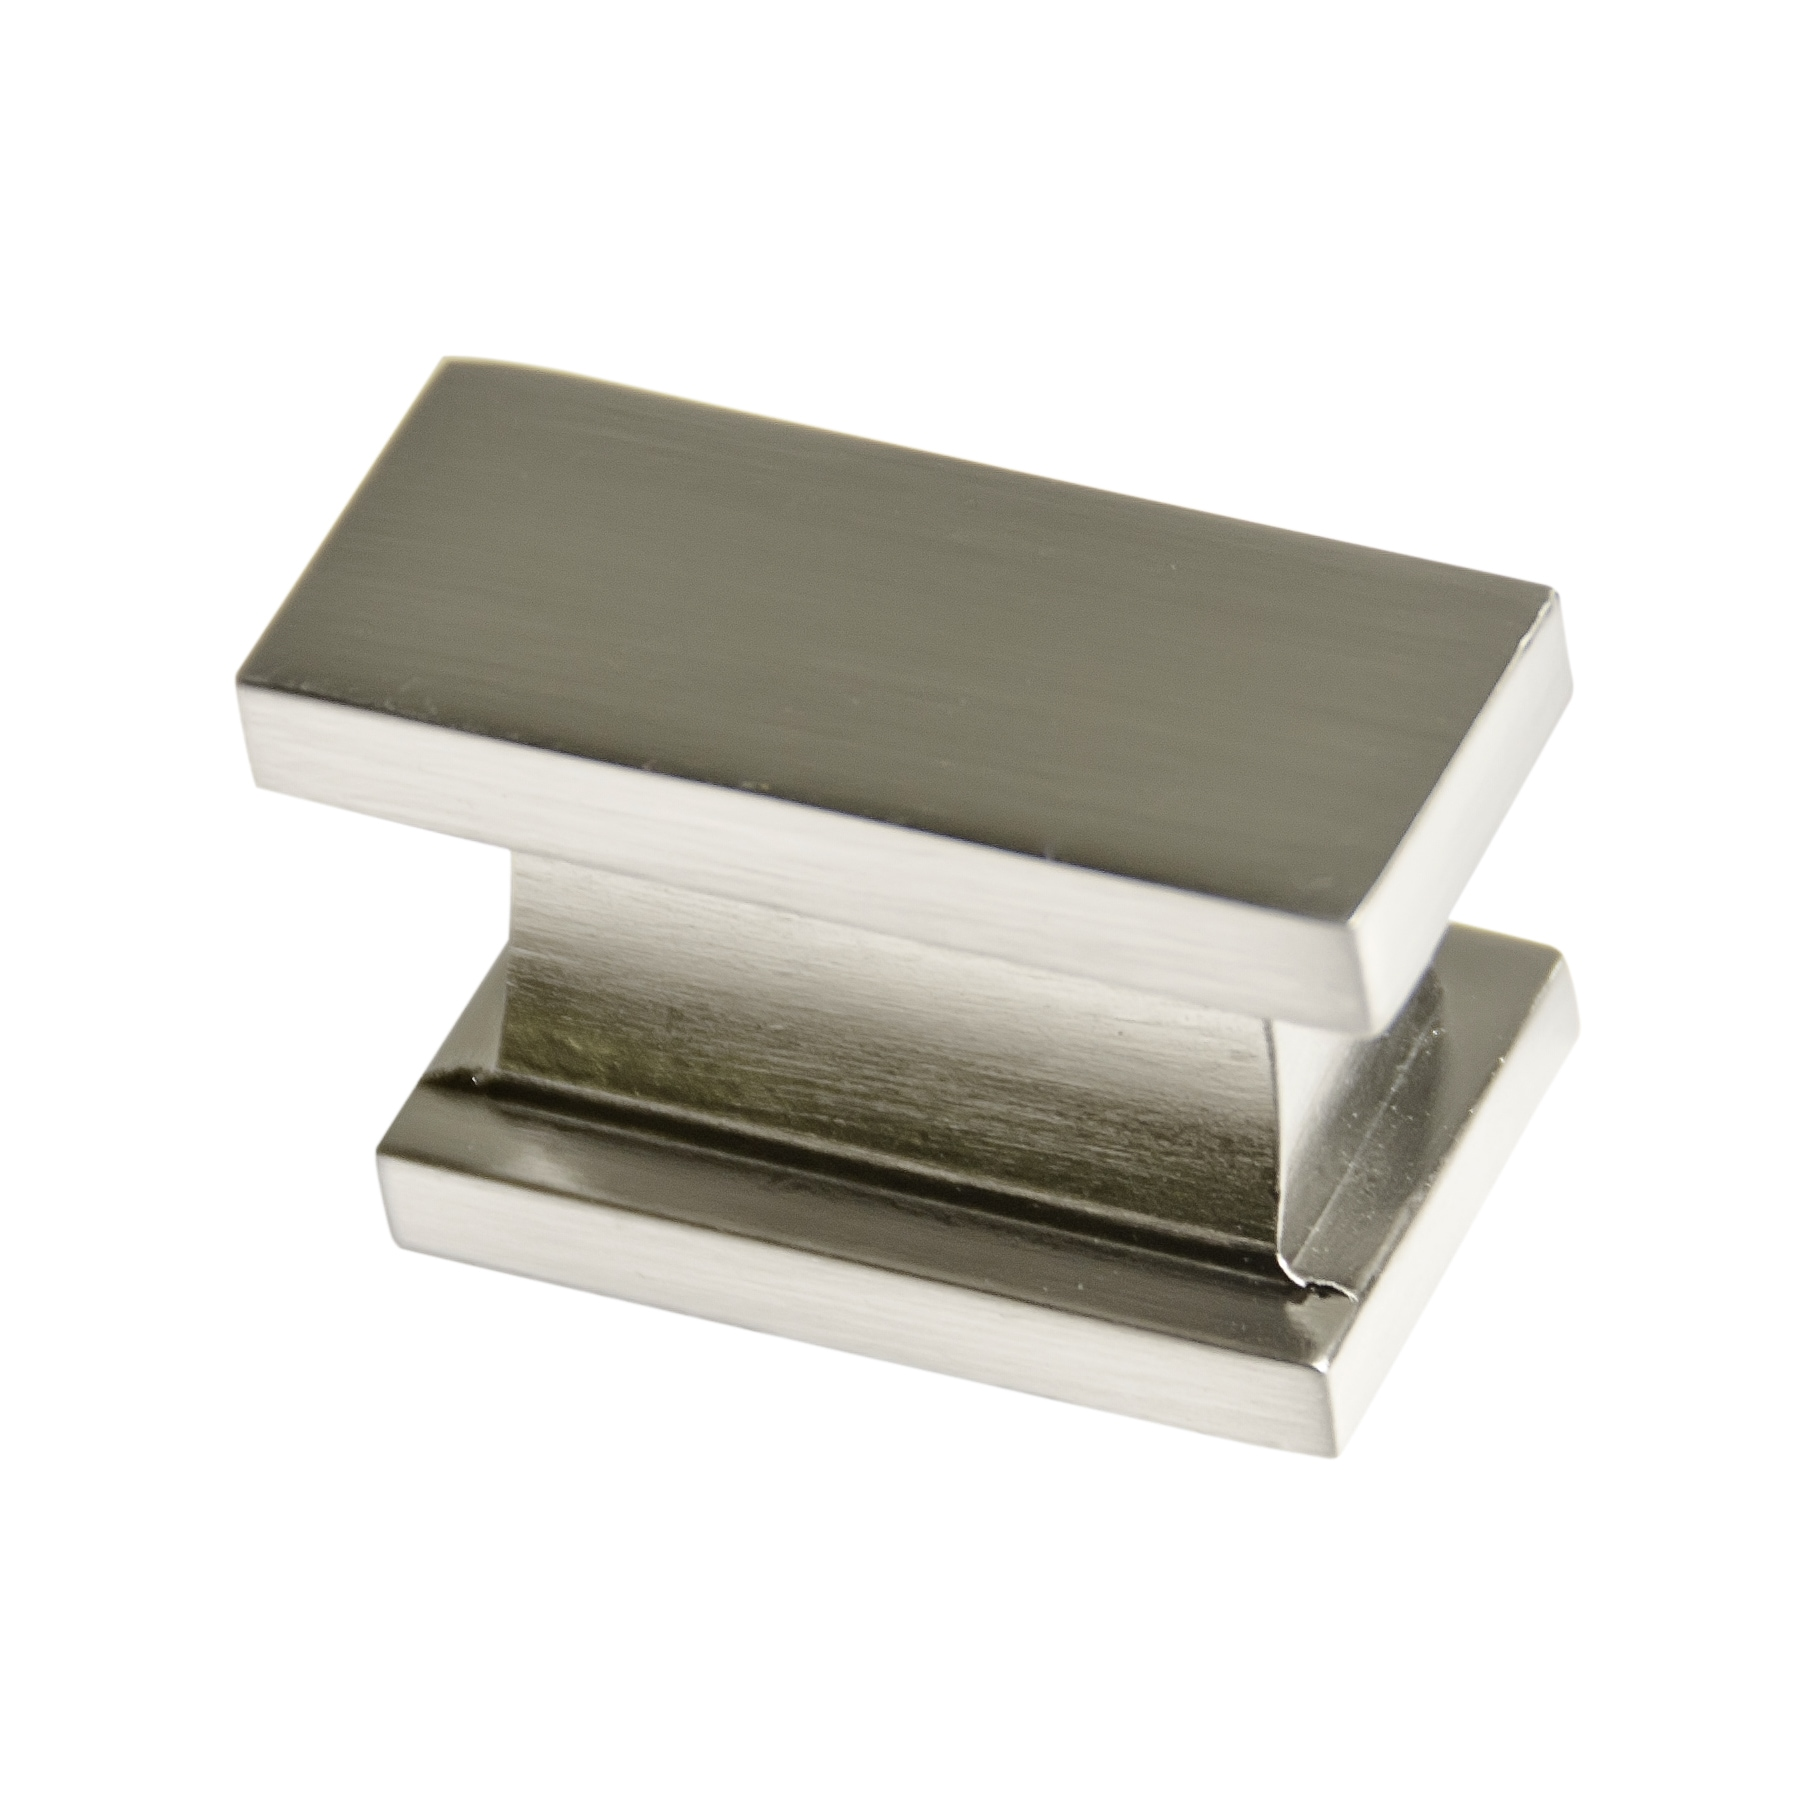 Southern Hills Satin Nickel Rectangular Cabinet Knobs (Pack of 5) (Pack of 5)